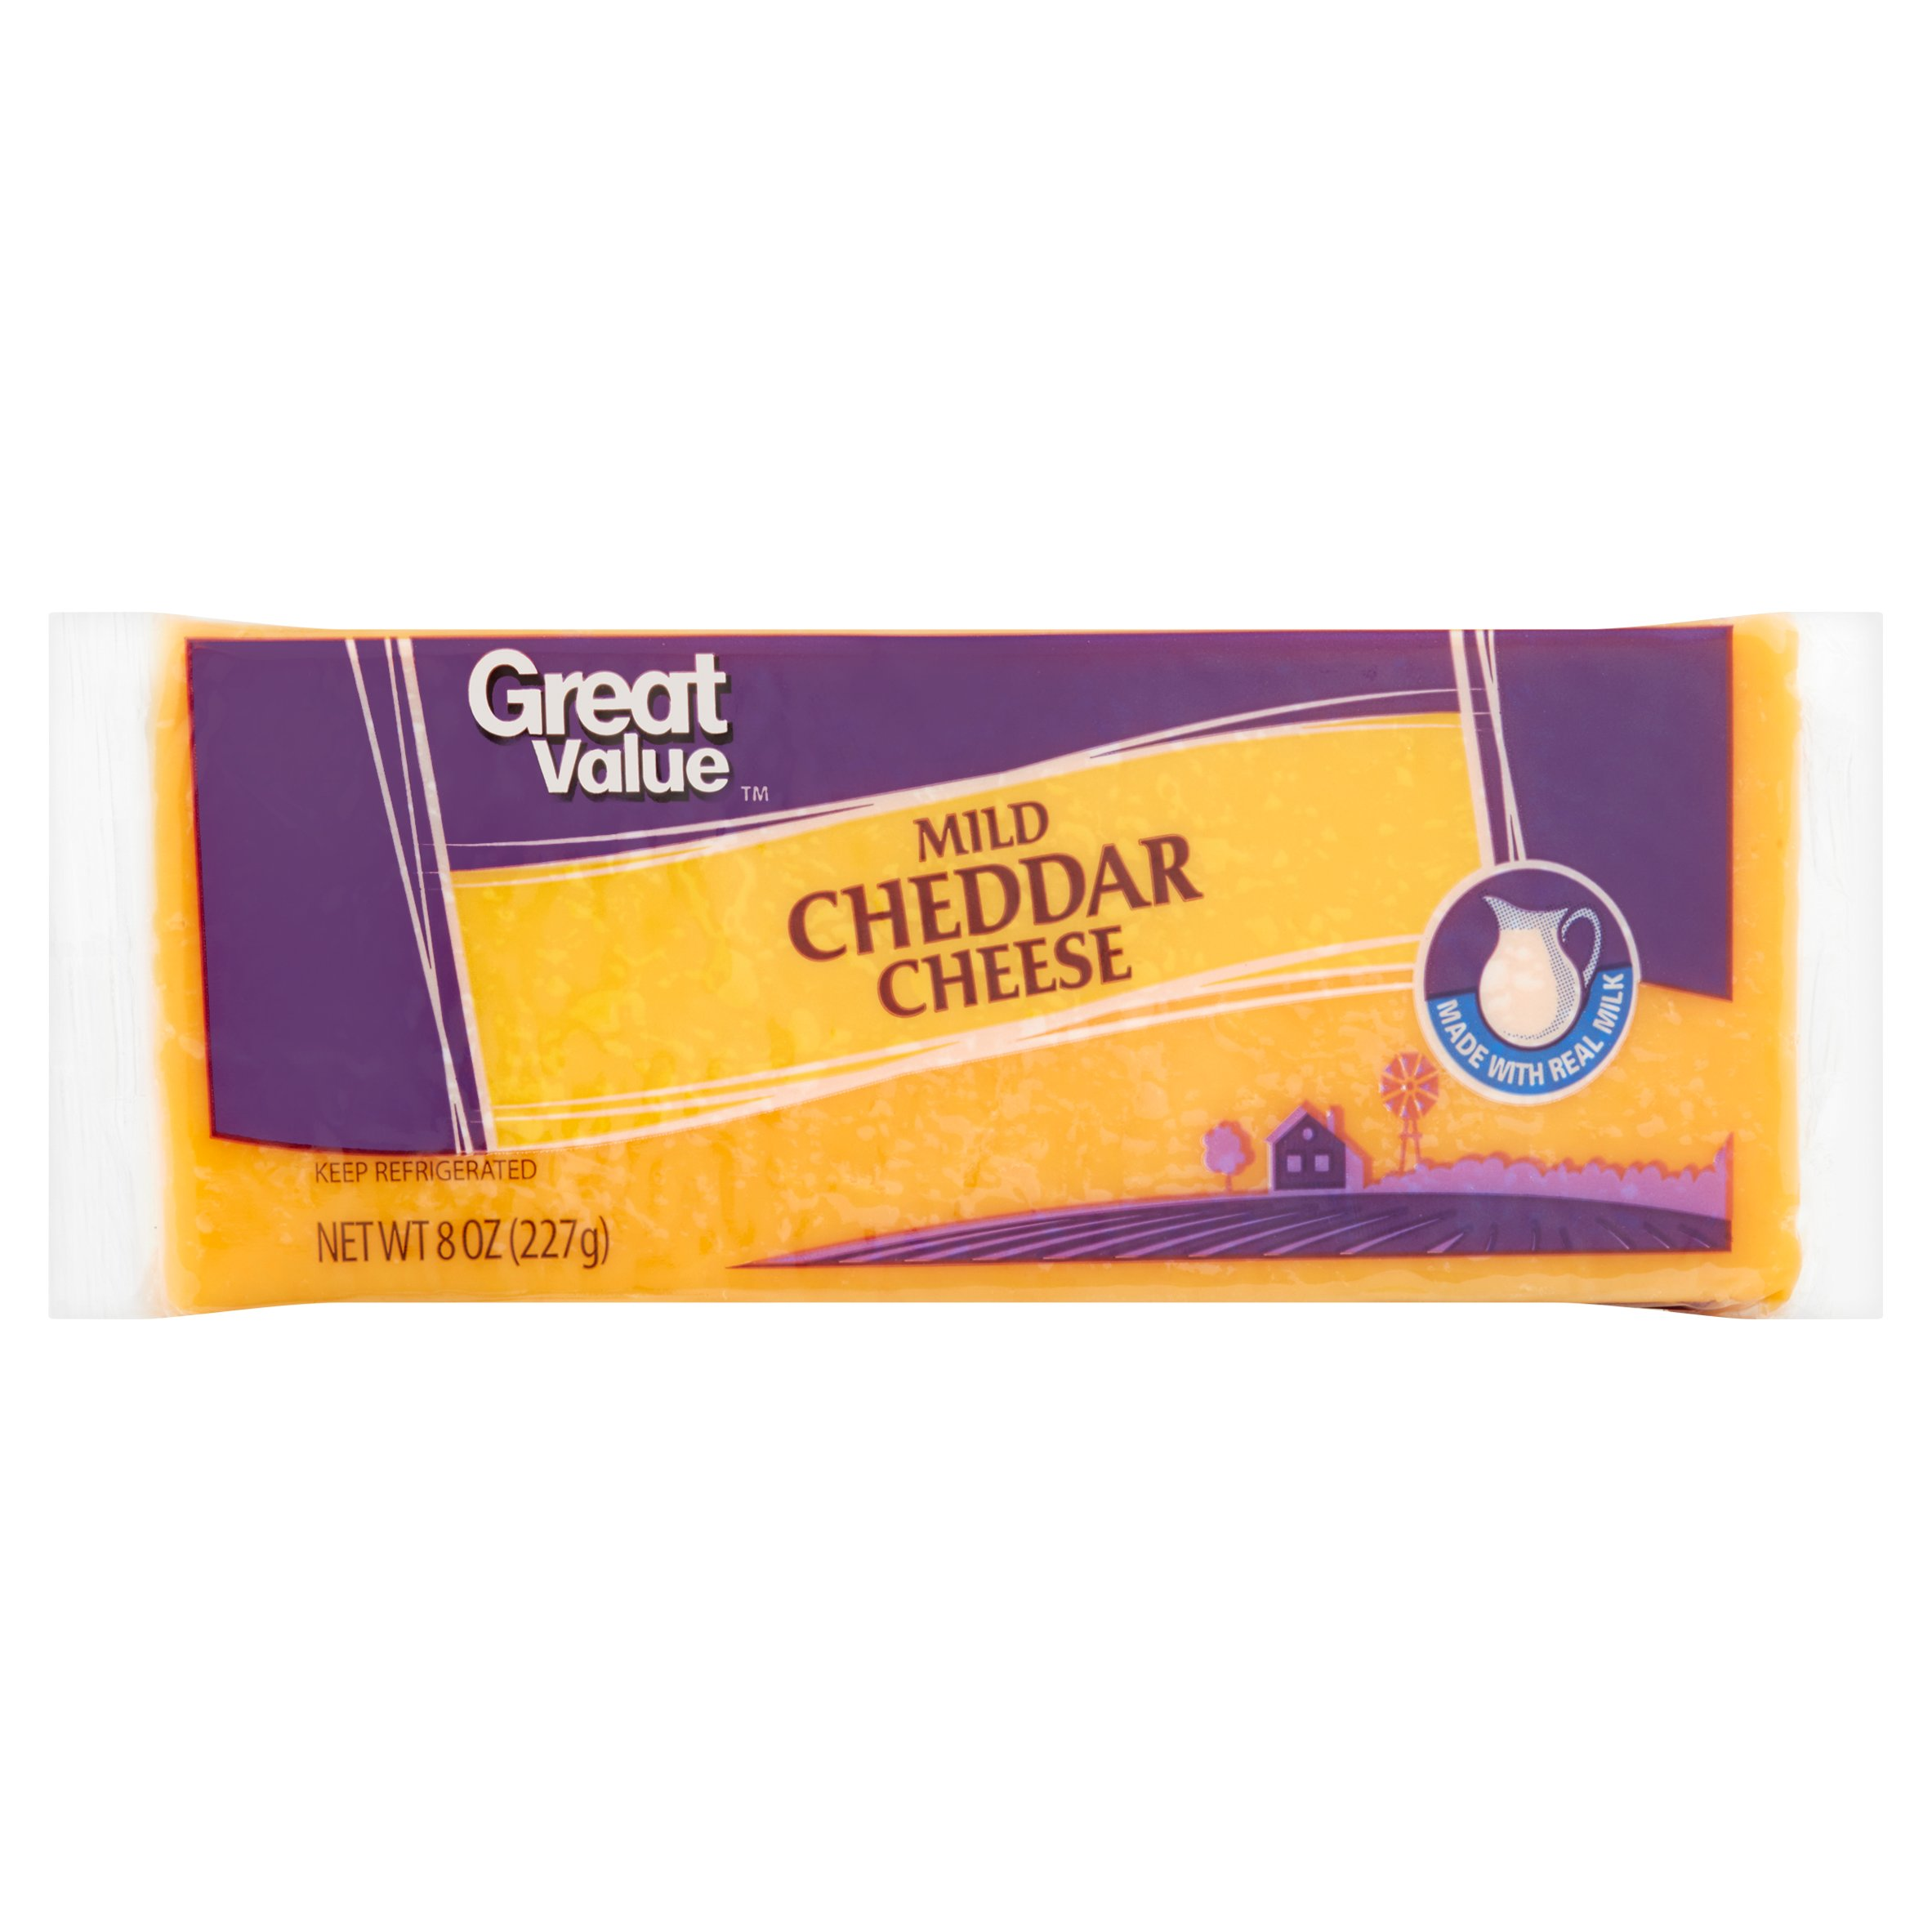 Great Value Mild Cheddar Cheese, 8 oz